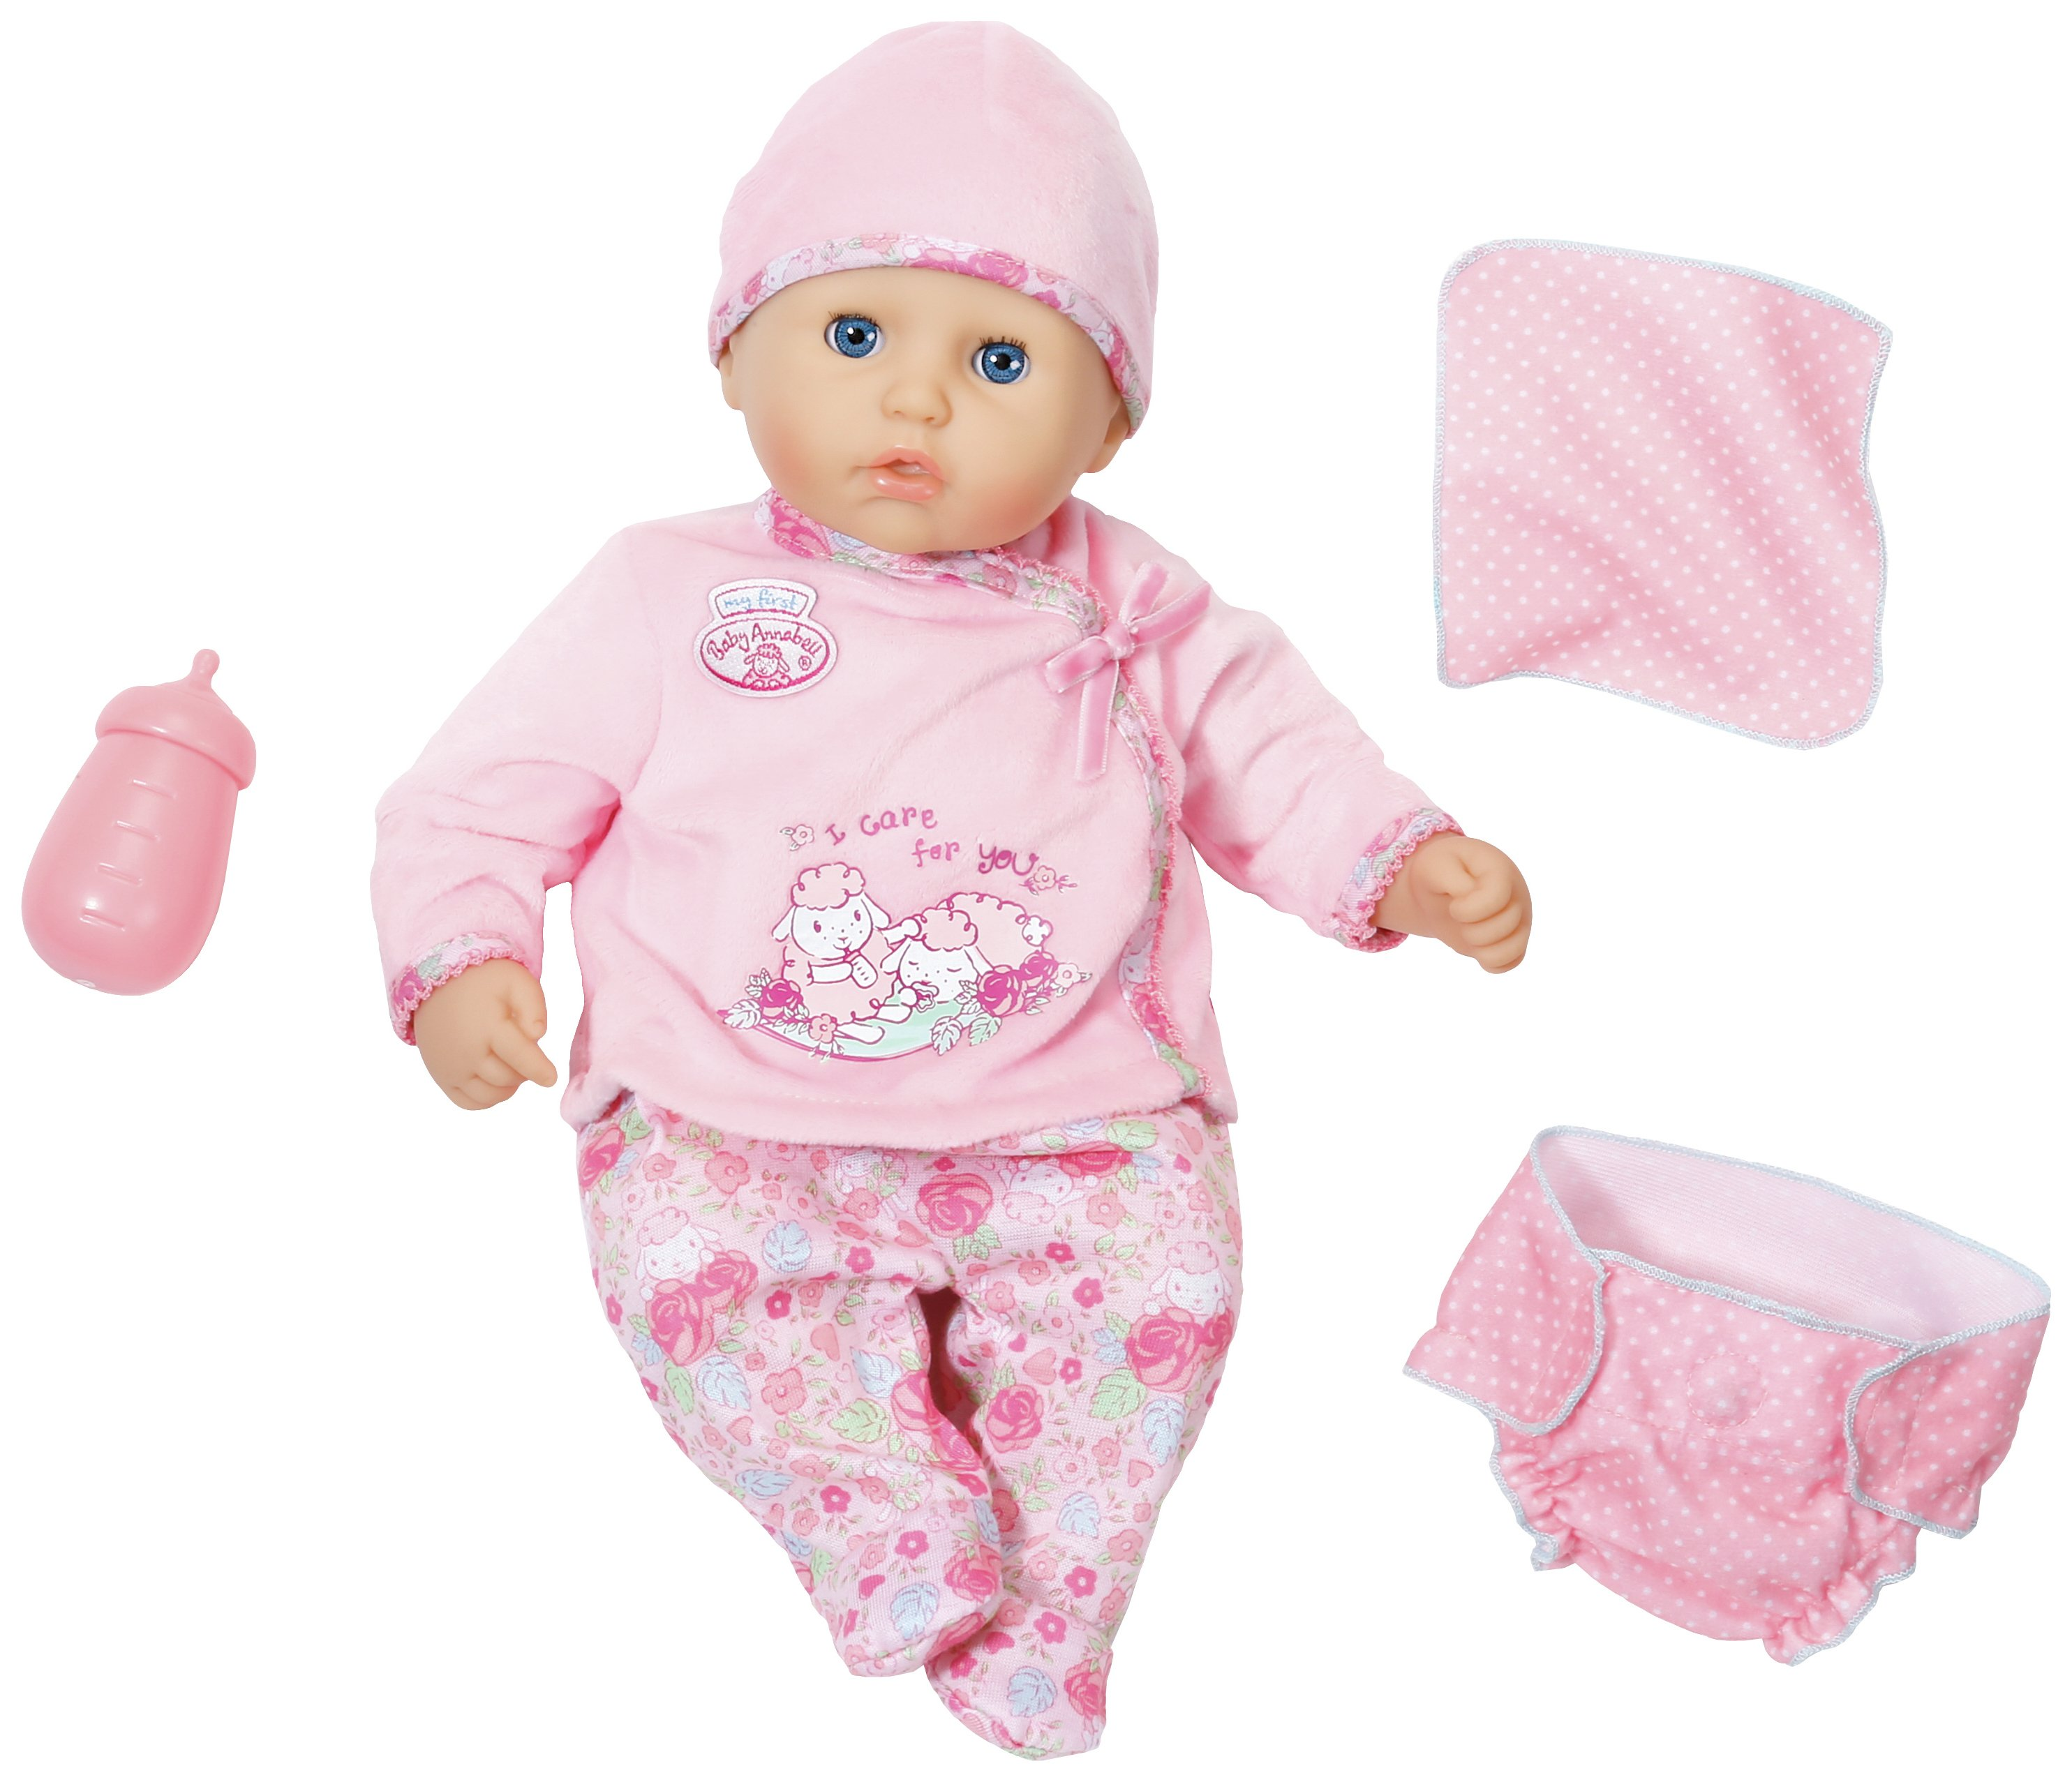 Image of Baby Annabell - Let's Play Doll